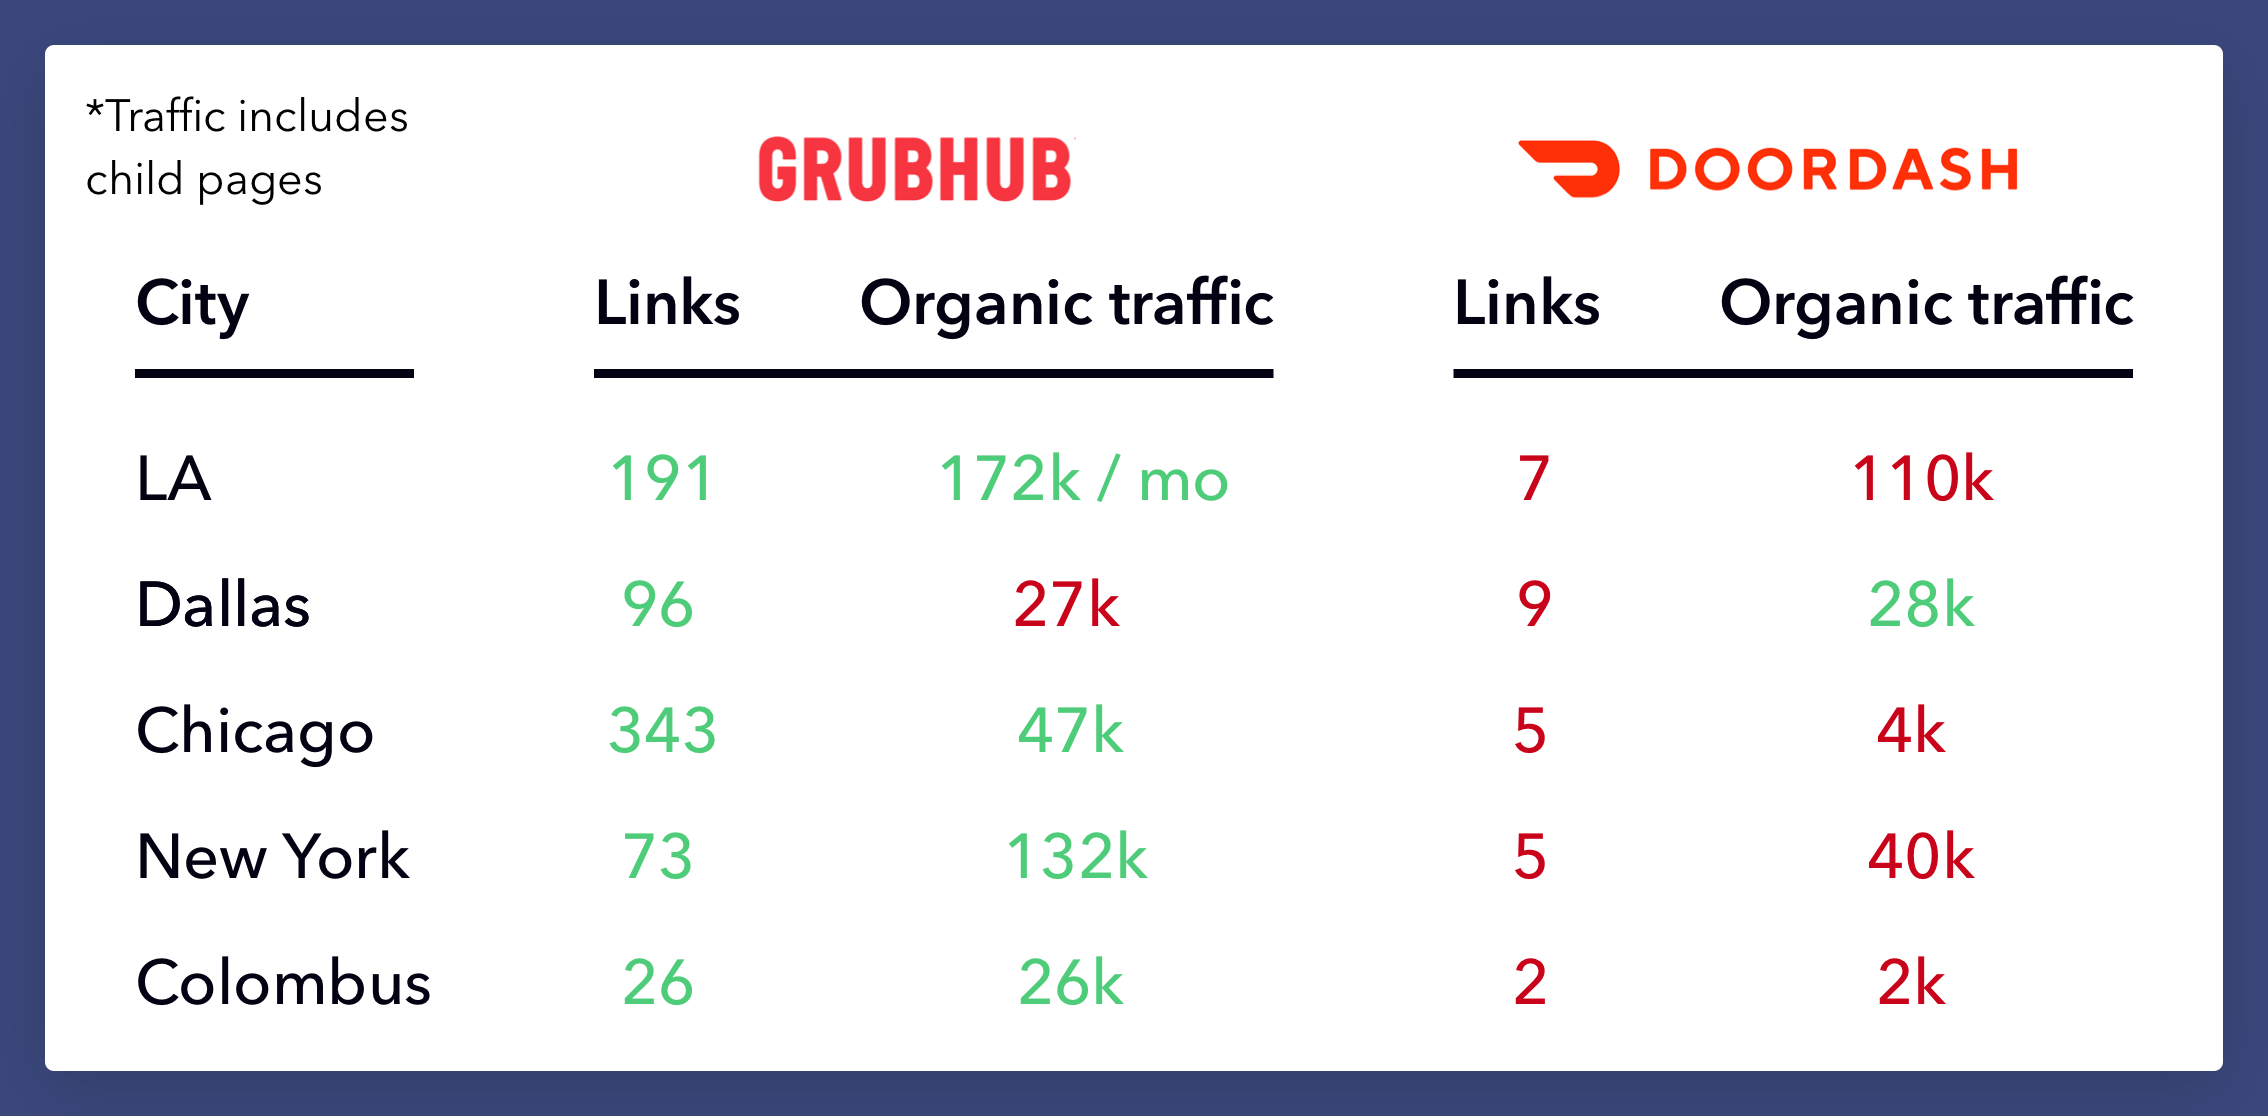 Grubhub and Doordash Organic traffic